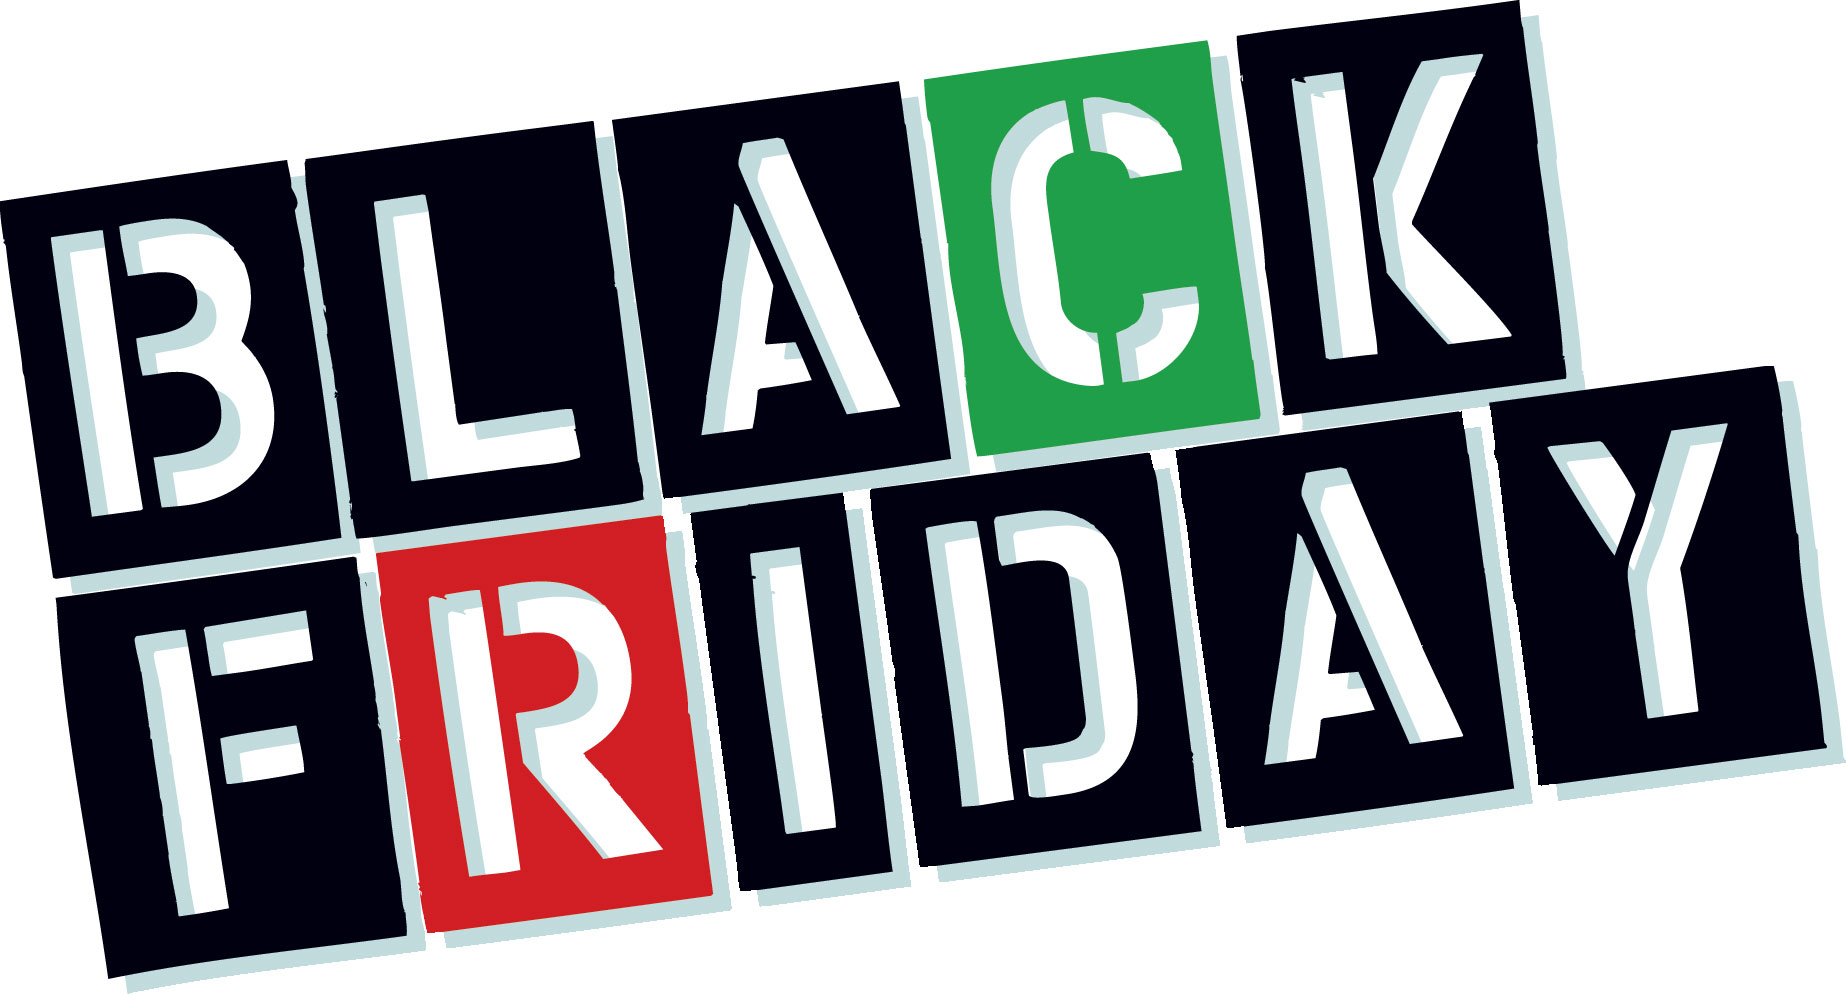 Friday Sale Black Friday Specials Chameleonjohn Blog